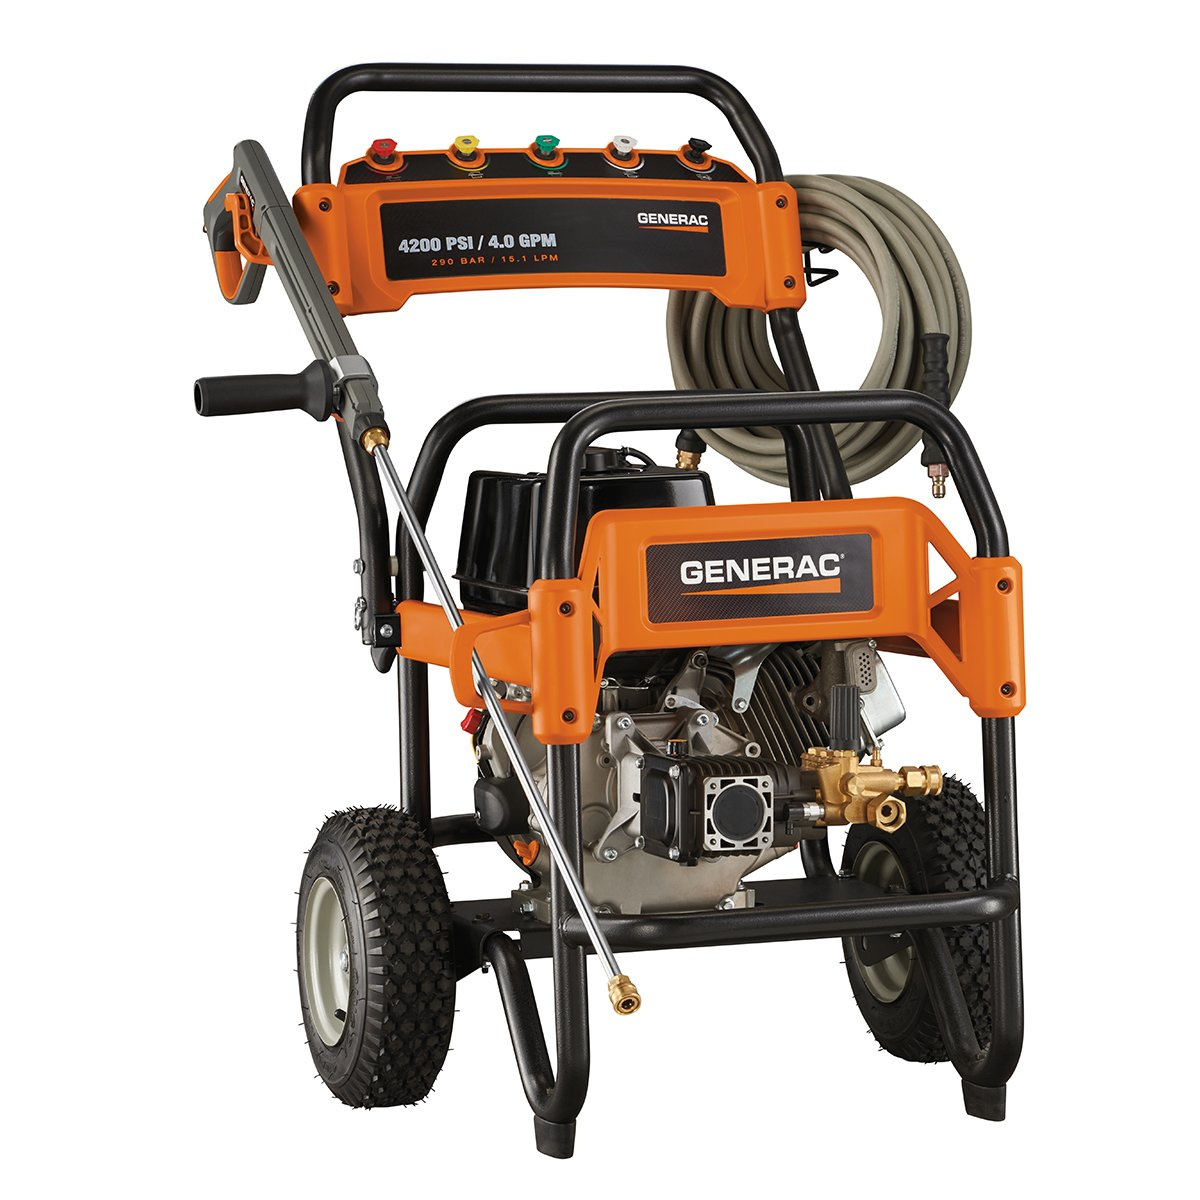 generac-6565-4200-psi-4.0-gpm-420cc-ohv-gas-powered-best-commercial-pressure-washers-reviews